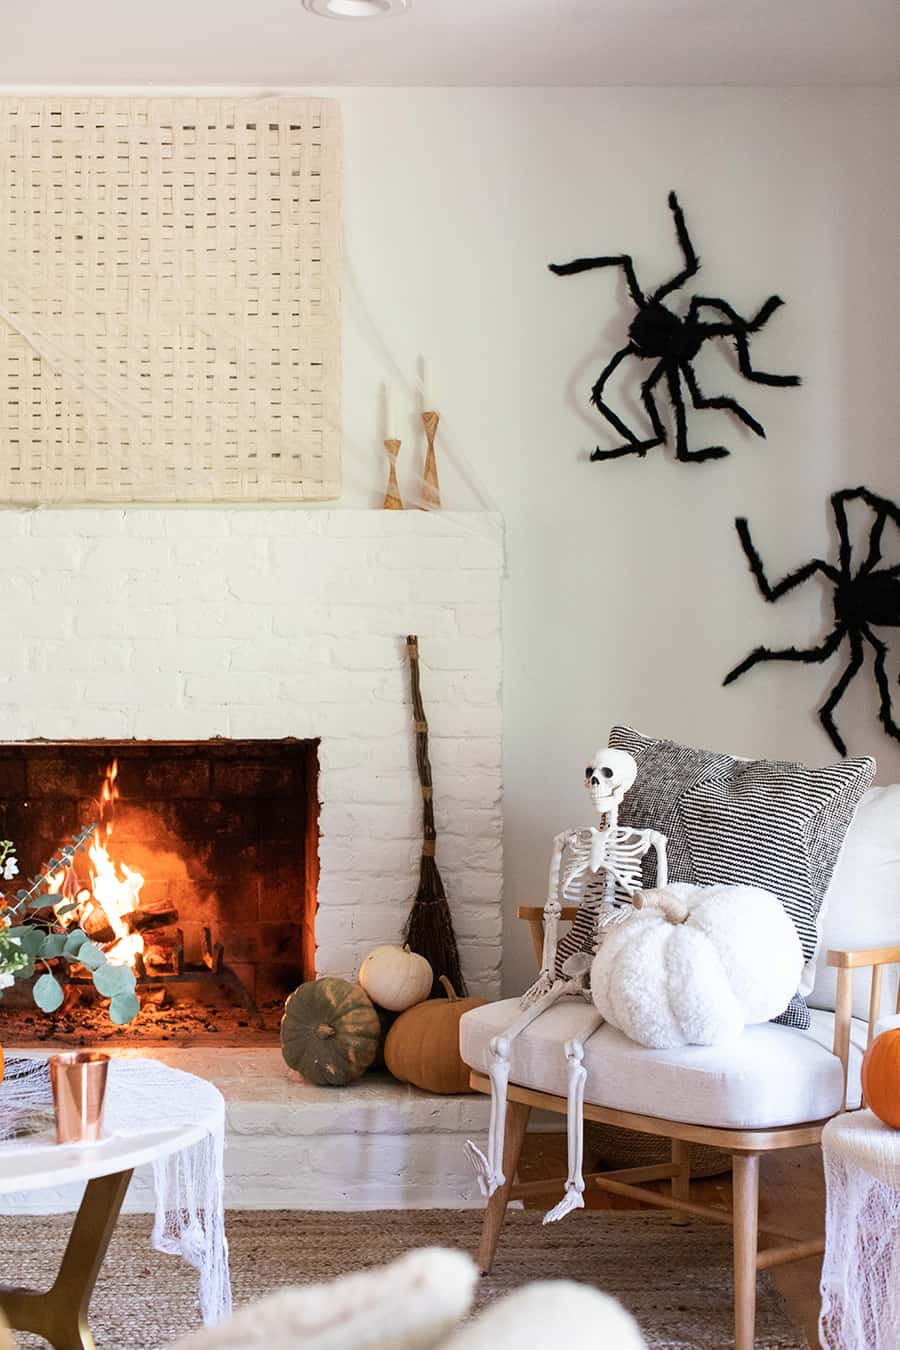 Halloween Home Decor with spiders and skeletons